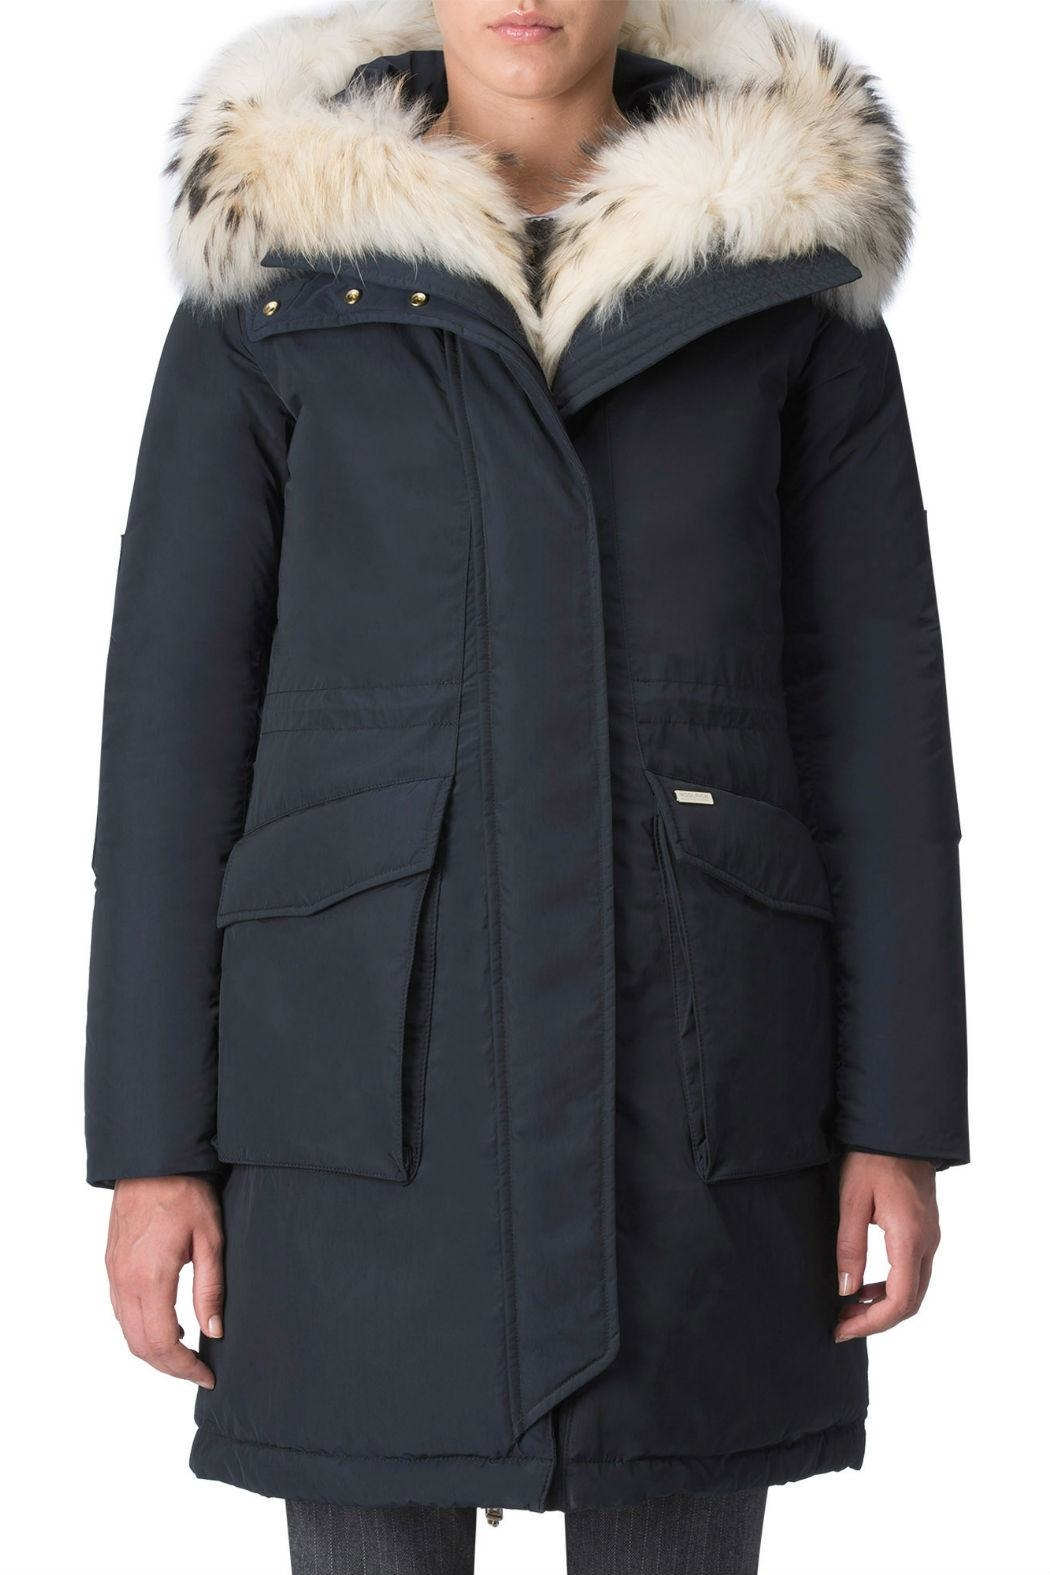 Woolrich John Rich & Bros. Military Fur Parka from Montreal by ...